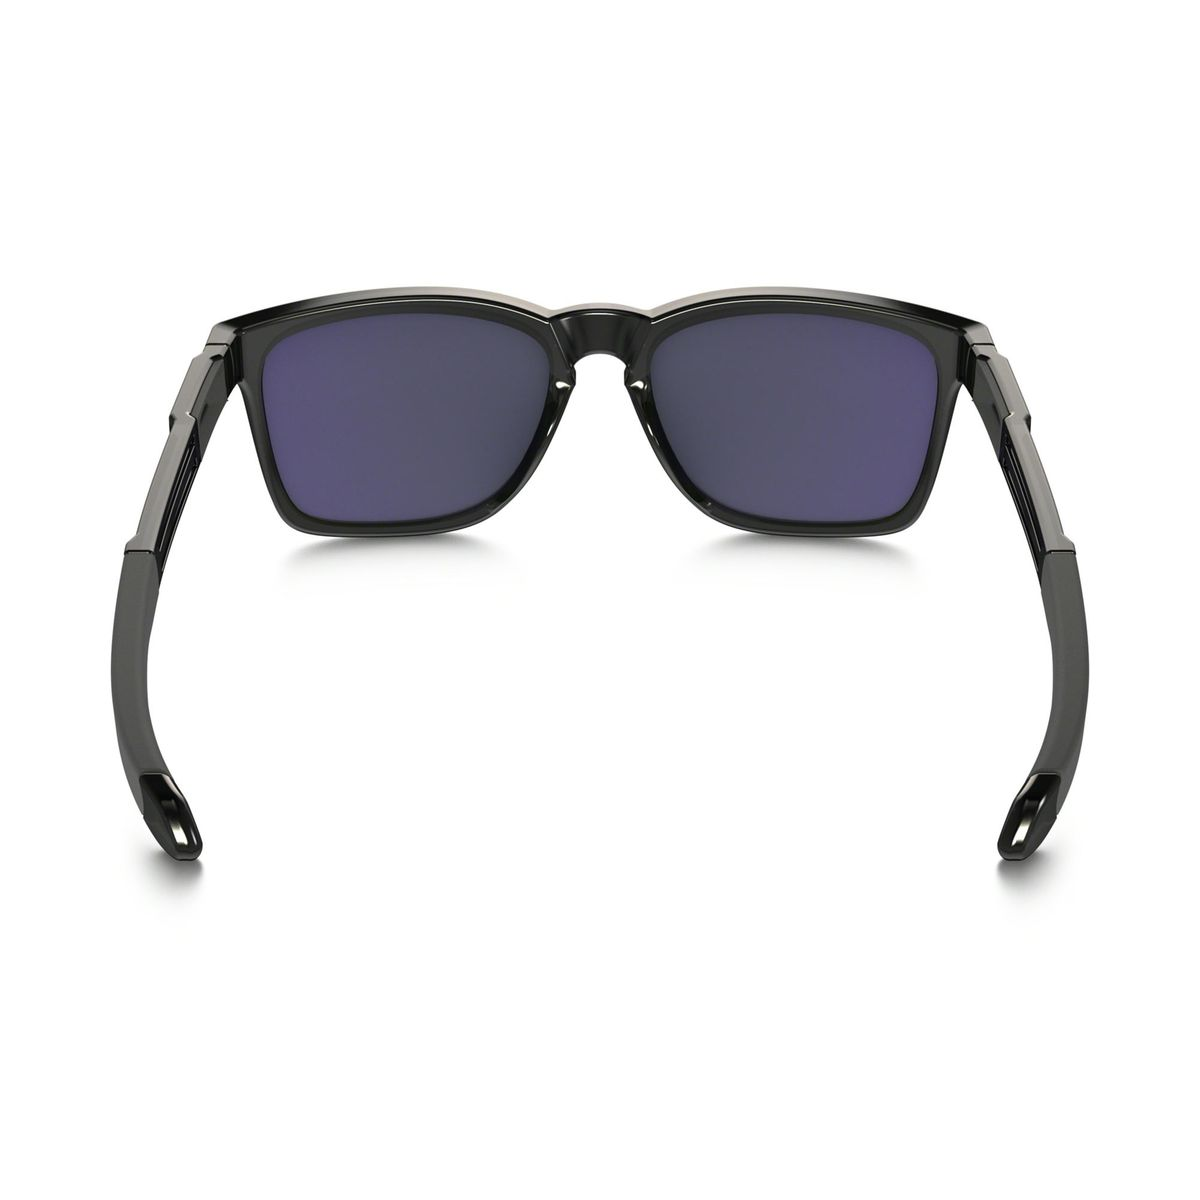 9a83b836e9 Buy OAKLEY CATALYST glasses